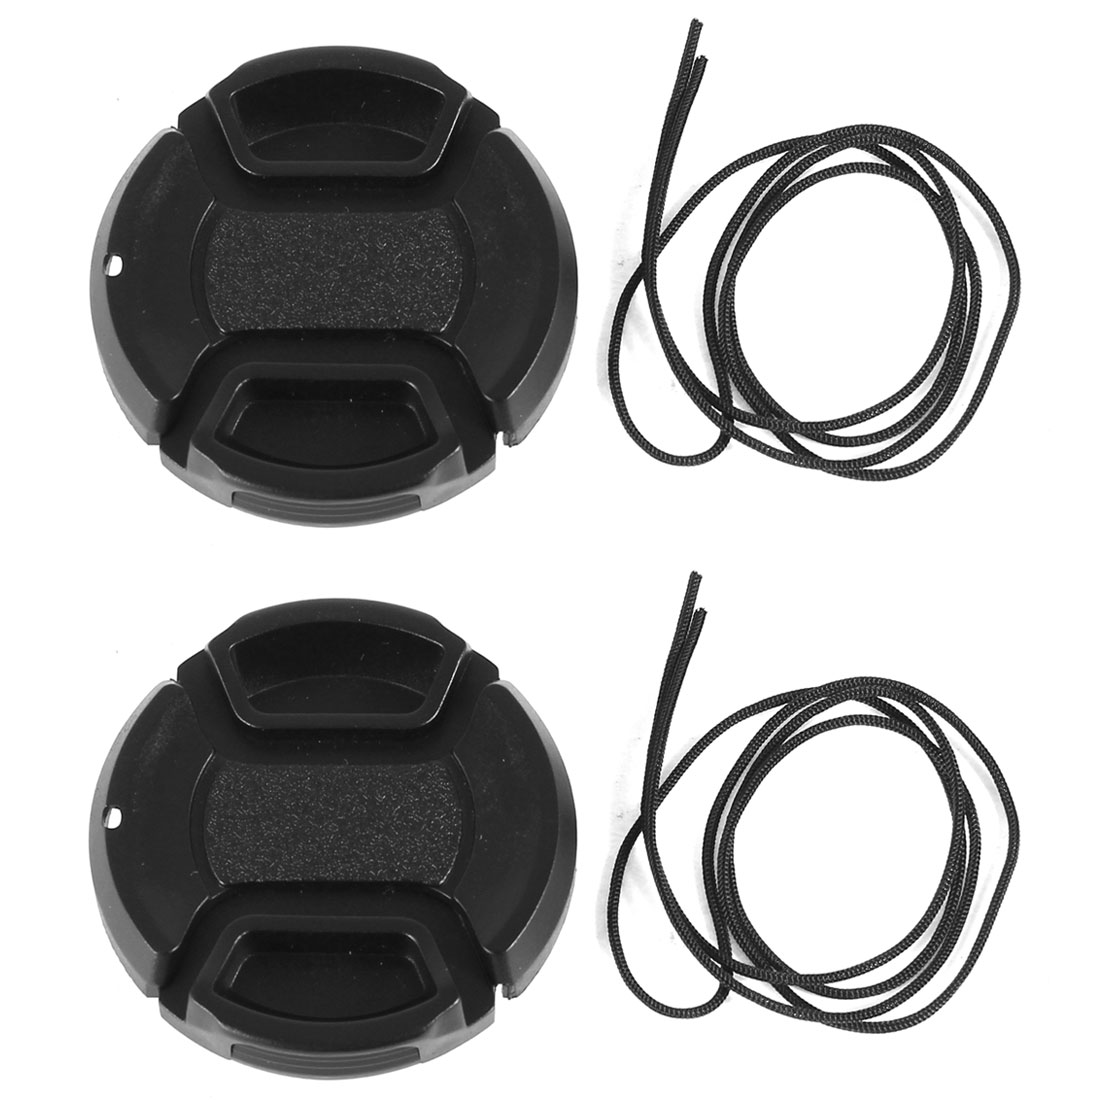 Unique Bargains 2 Pcs 40.5mm Center Pinch Lens Cap Cover w Strap Leash for DLSR Digital Cameras